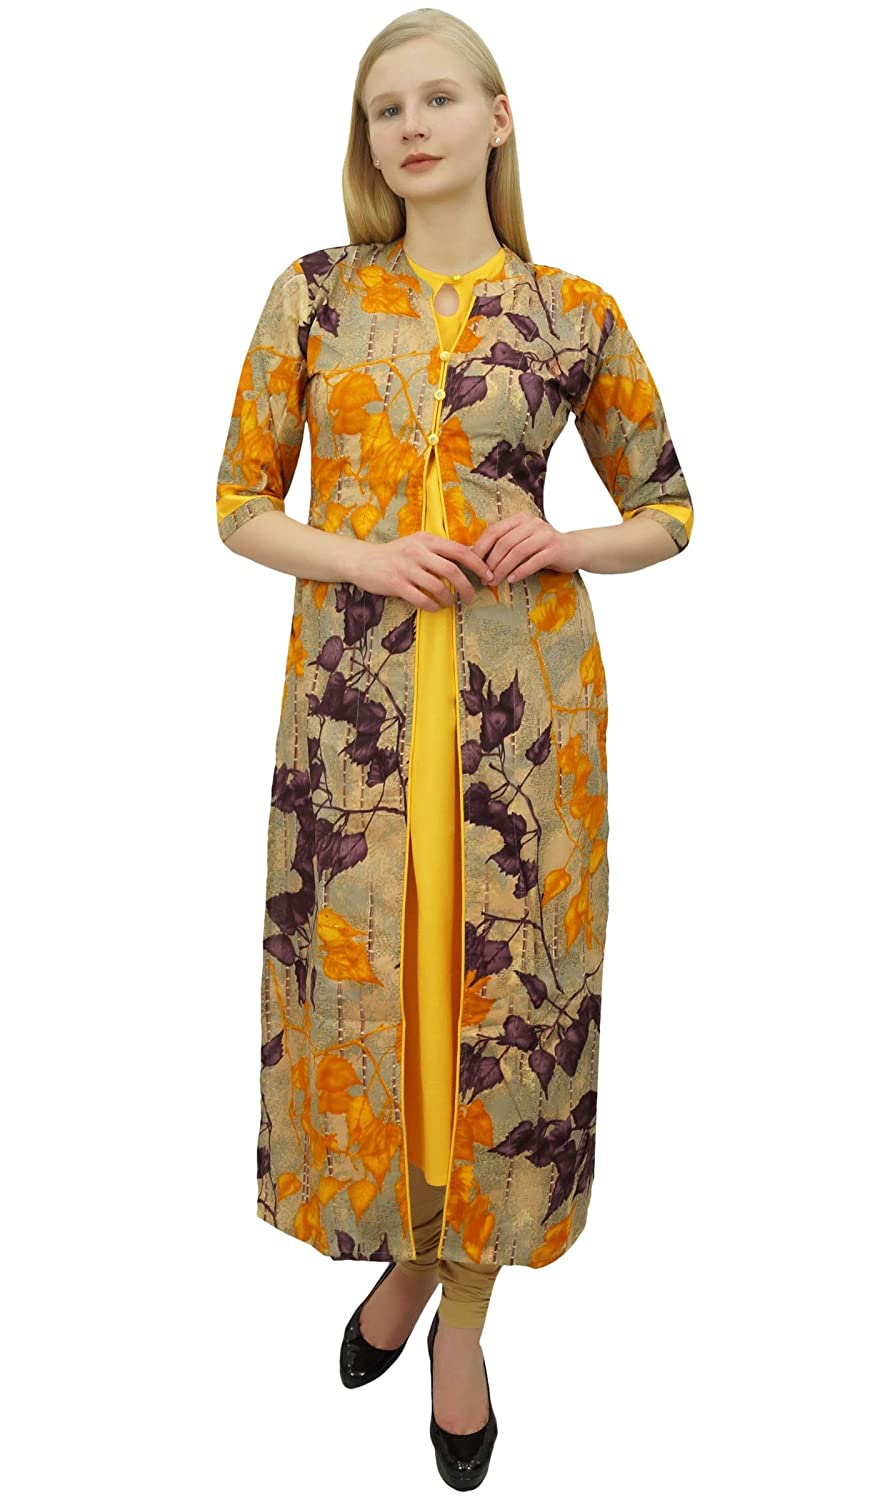 b4aba76e0f Phagun Women's 2 Pcs Kurta with Jacket Dress Indian Designer Clothing:  Amazon.com.au: Fashion